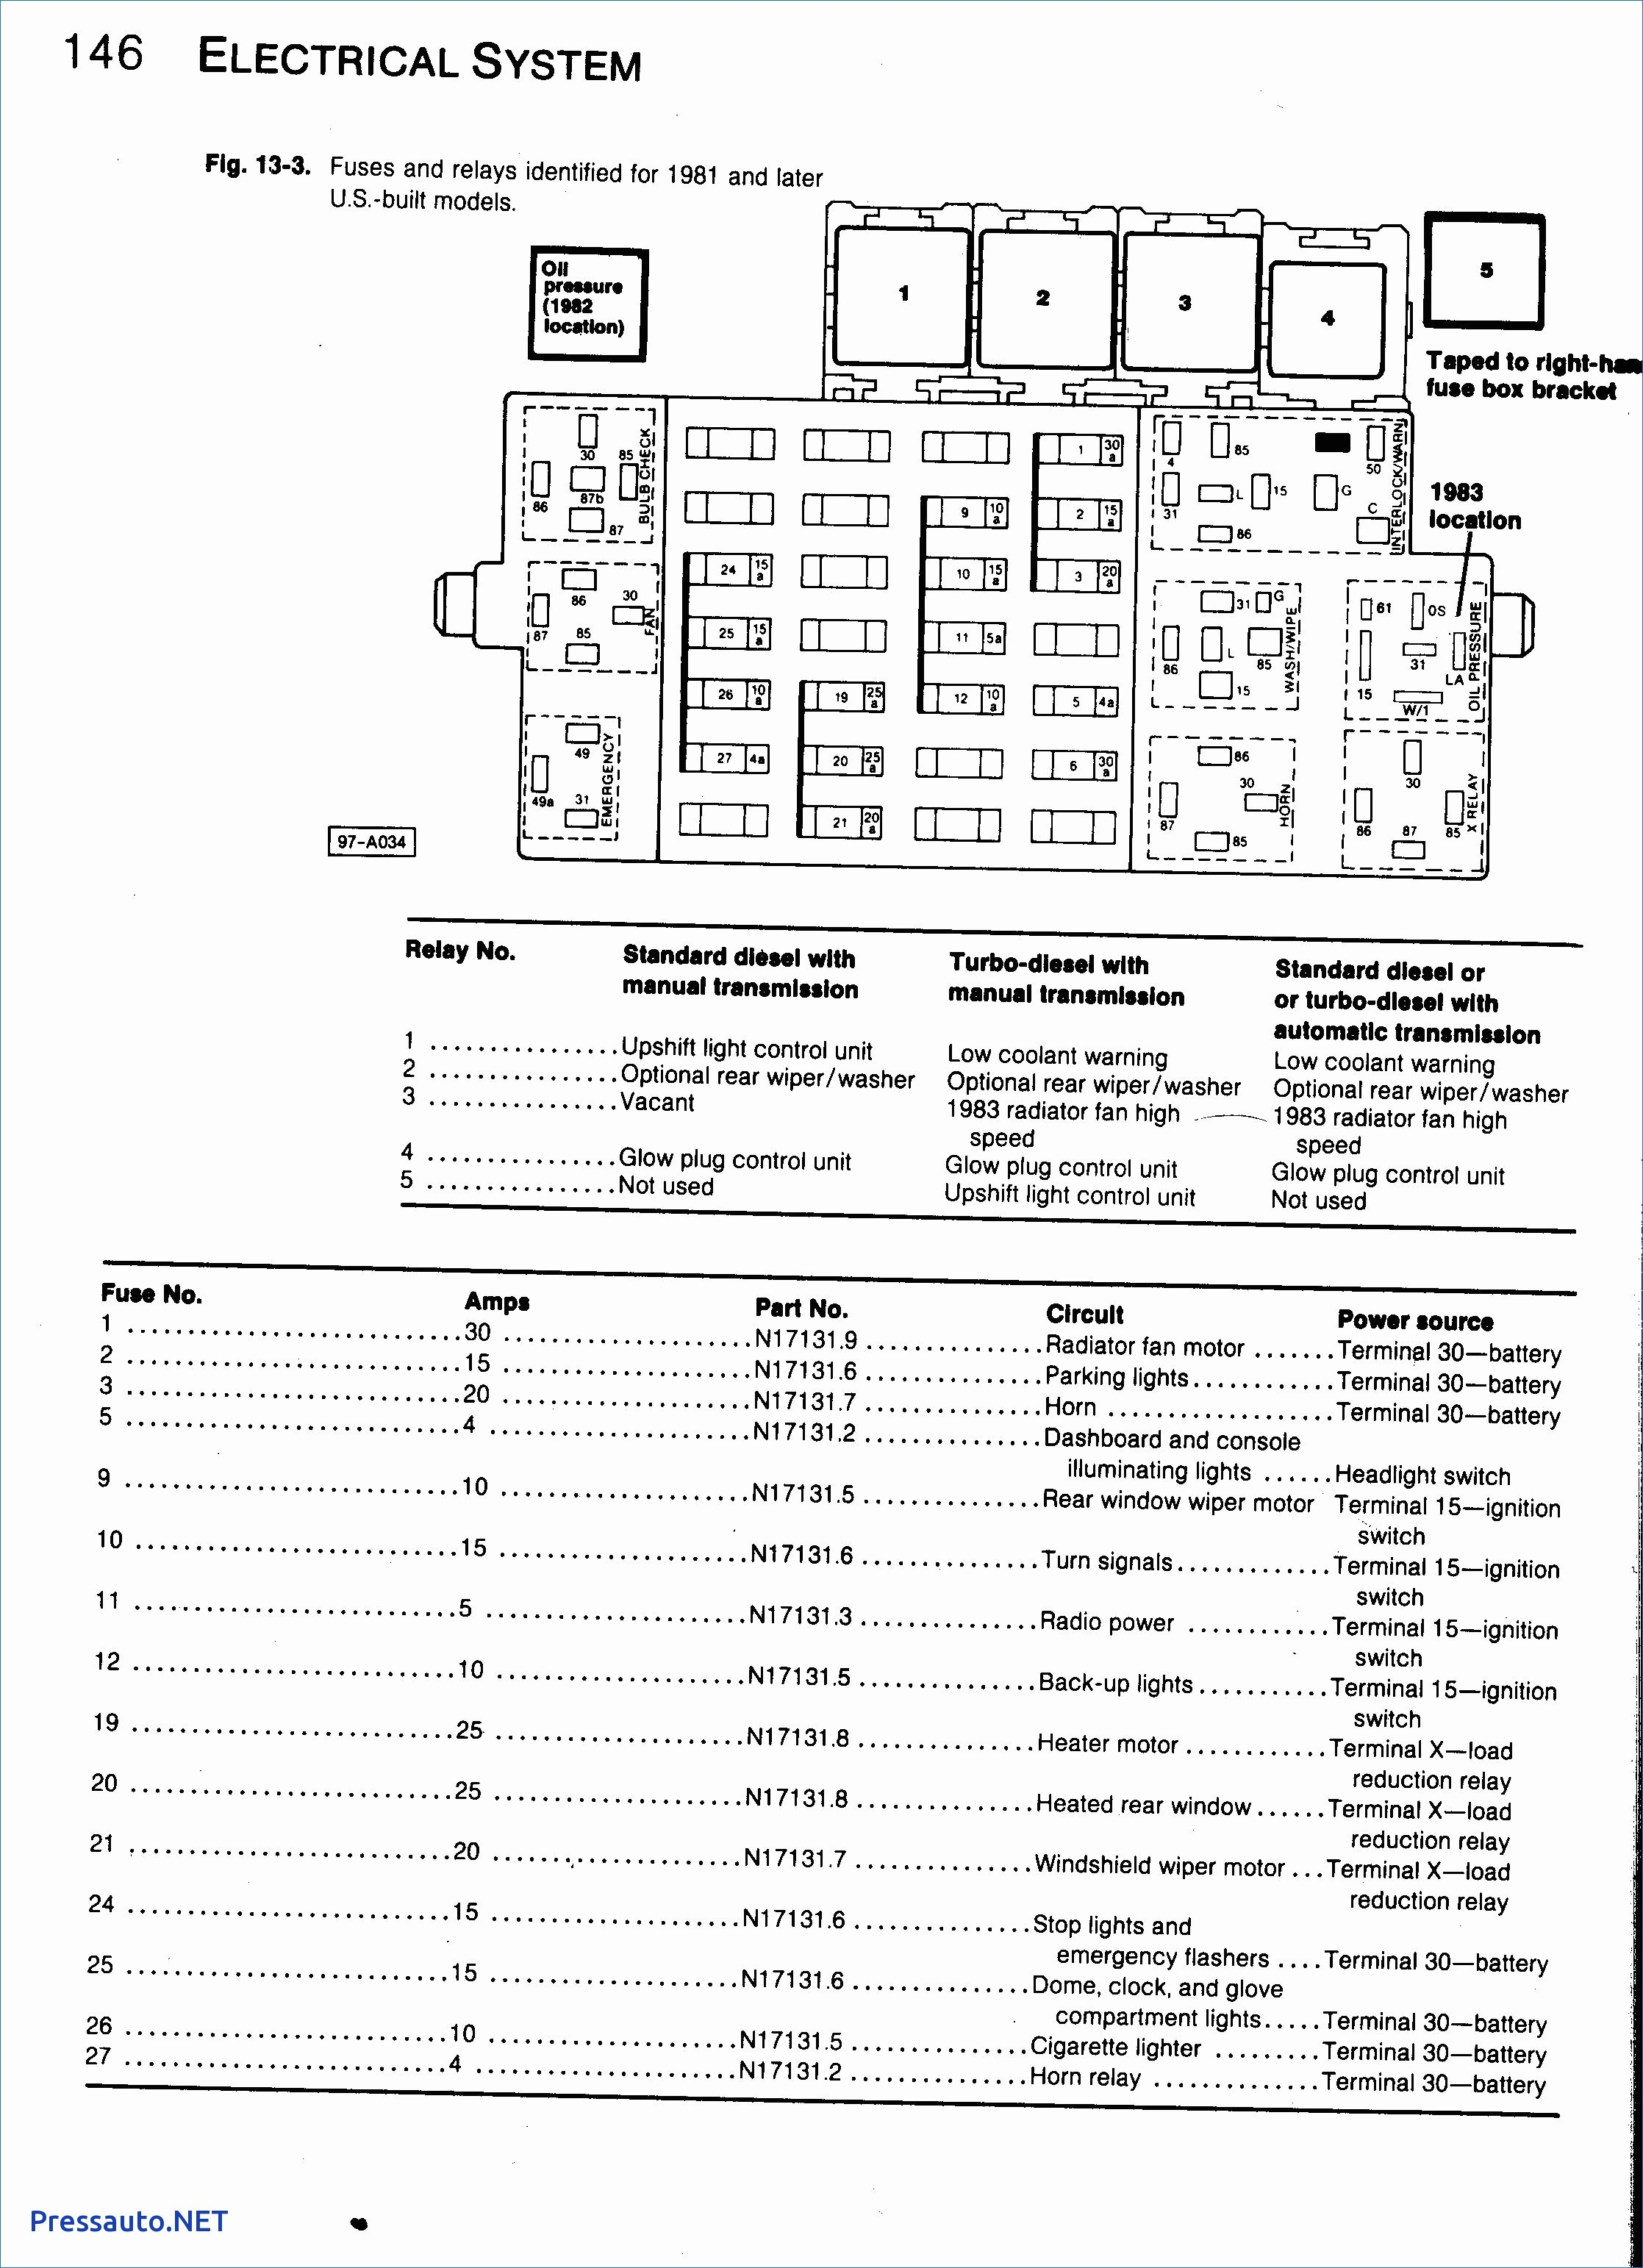 2002 Vw Jetta Tdi Engine Diagram My Wiring Diagram